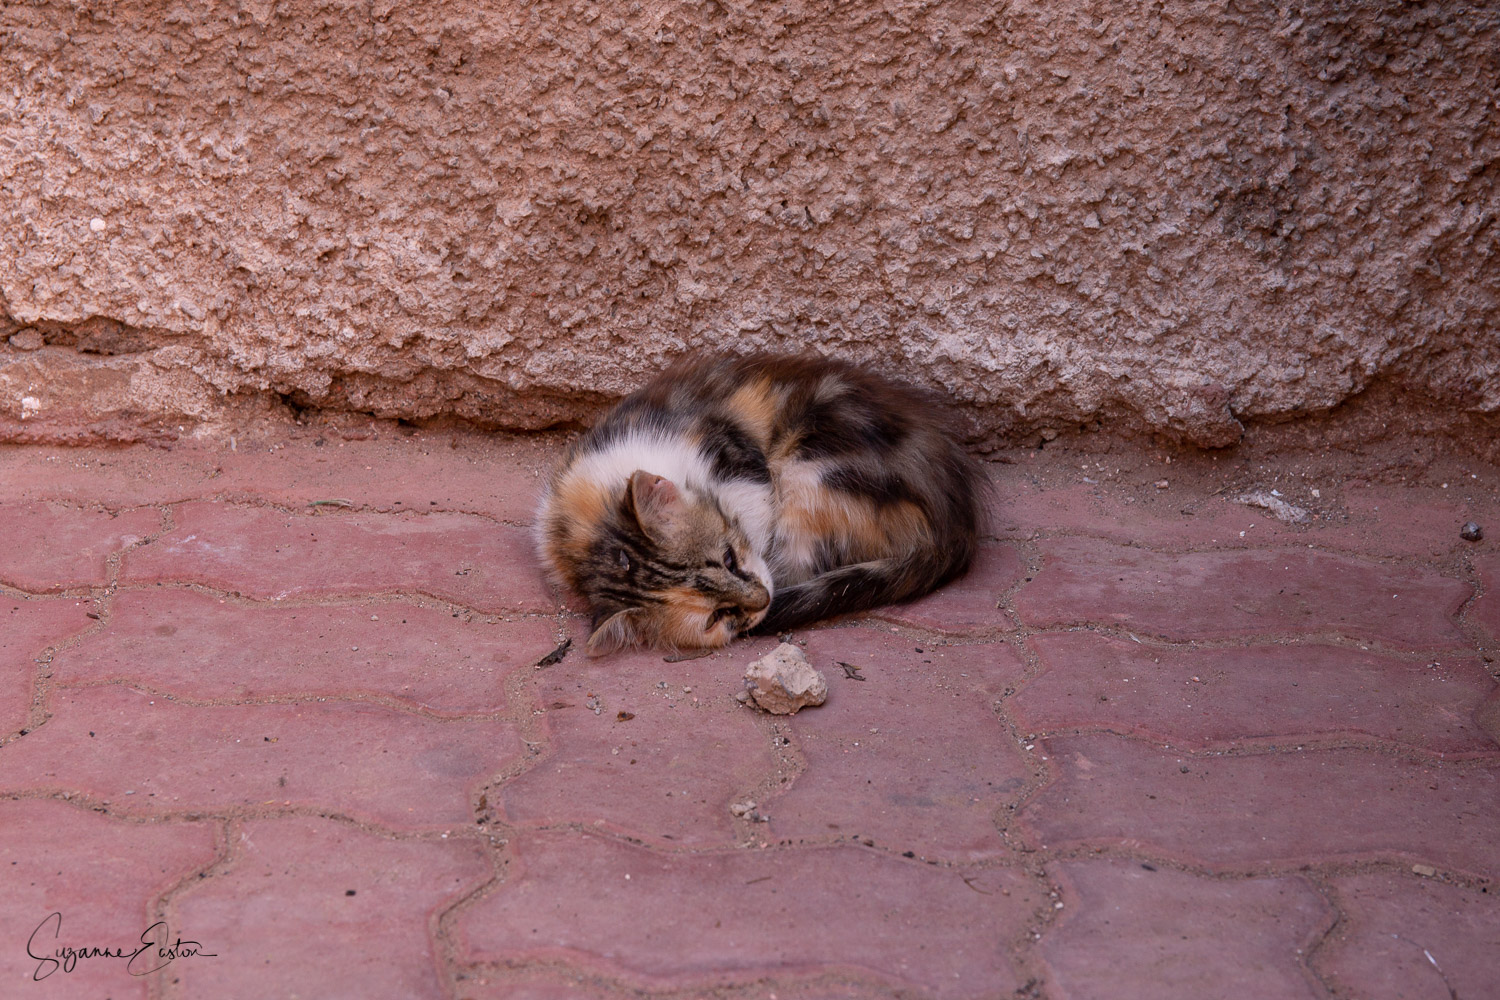 A tiny kitten and his rock asleep in a side street of the Kasbah in Marrakech